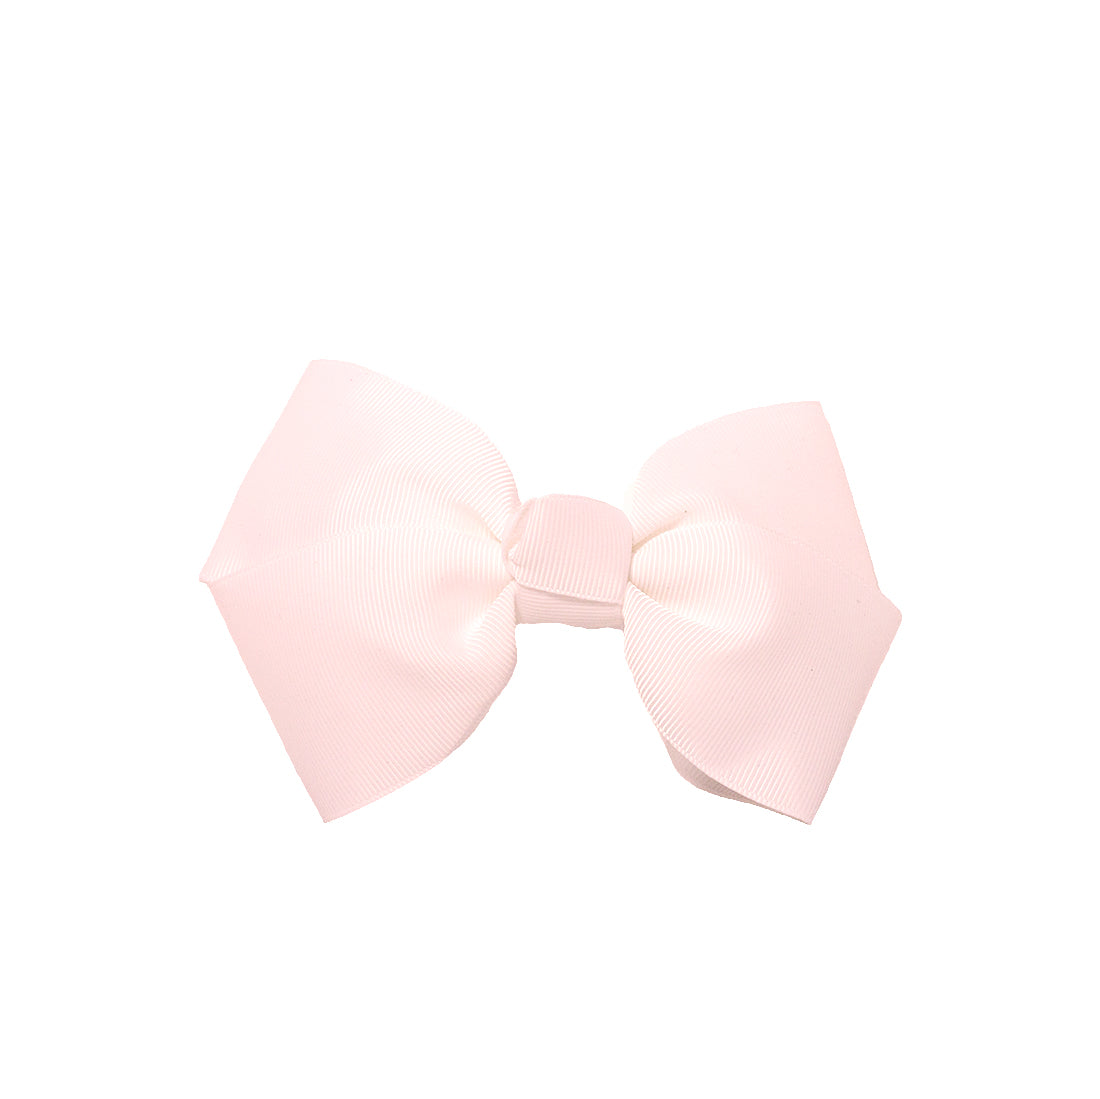 Mia® Spirit Grosgrain Ribbon Bow Barrette - large size - white color - designed by #MiaKaminski of Mia Beauty